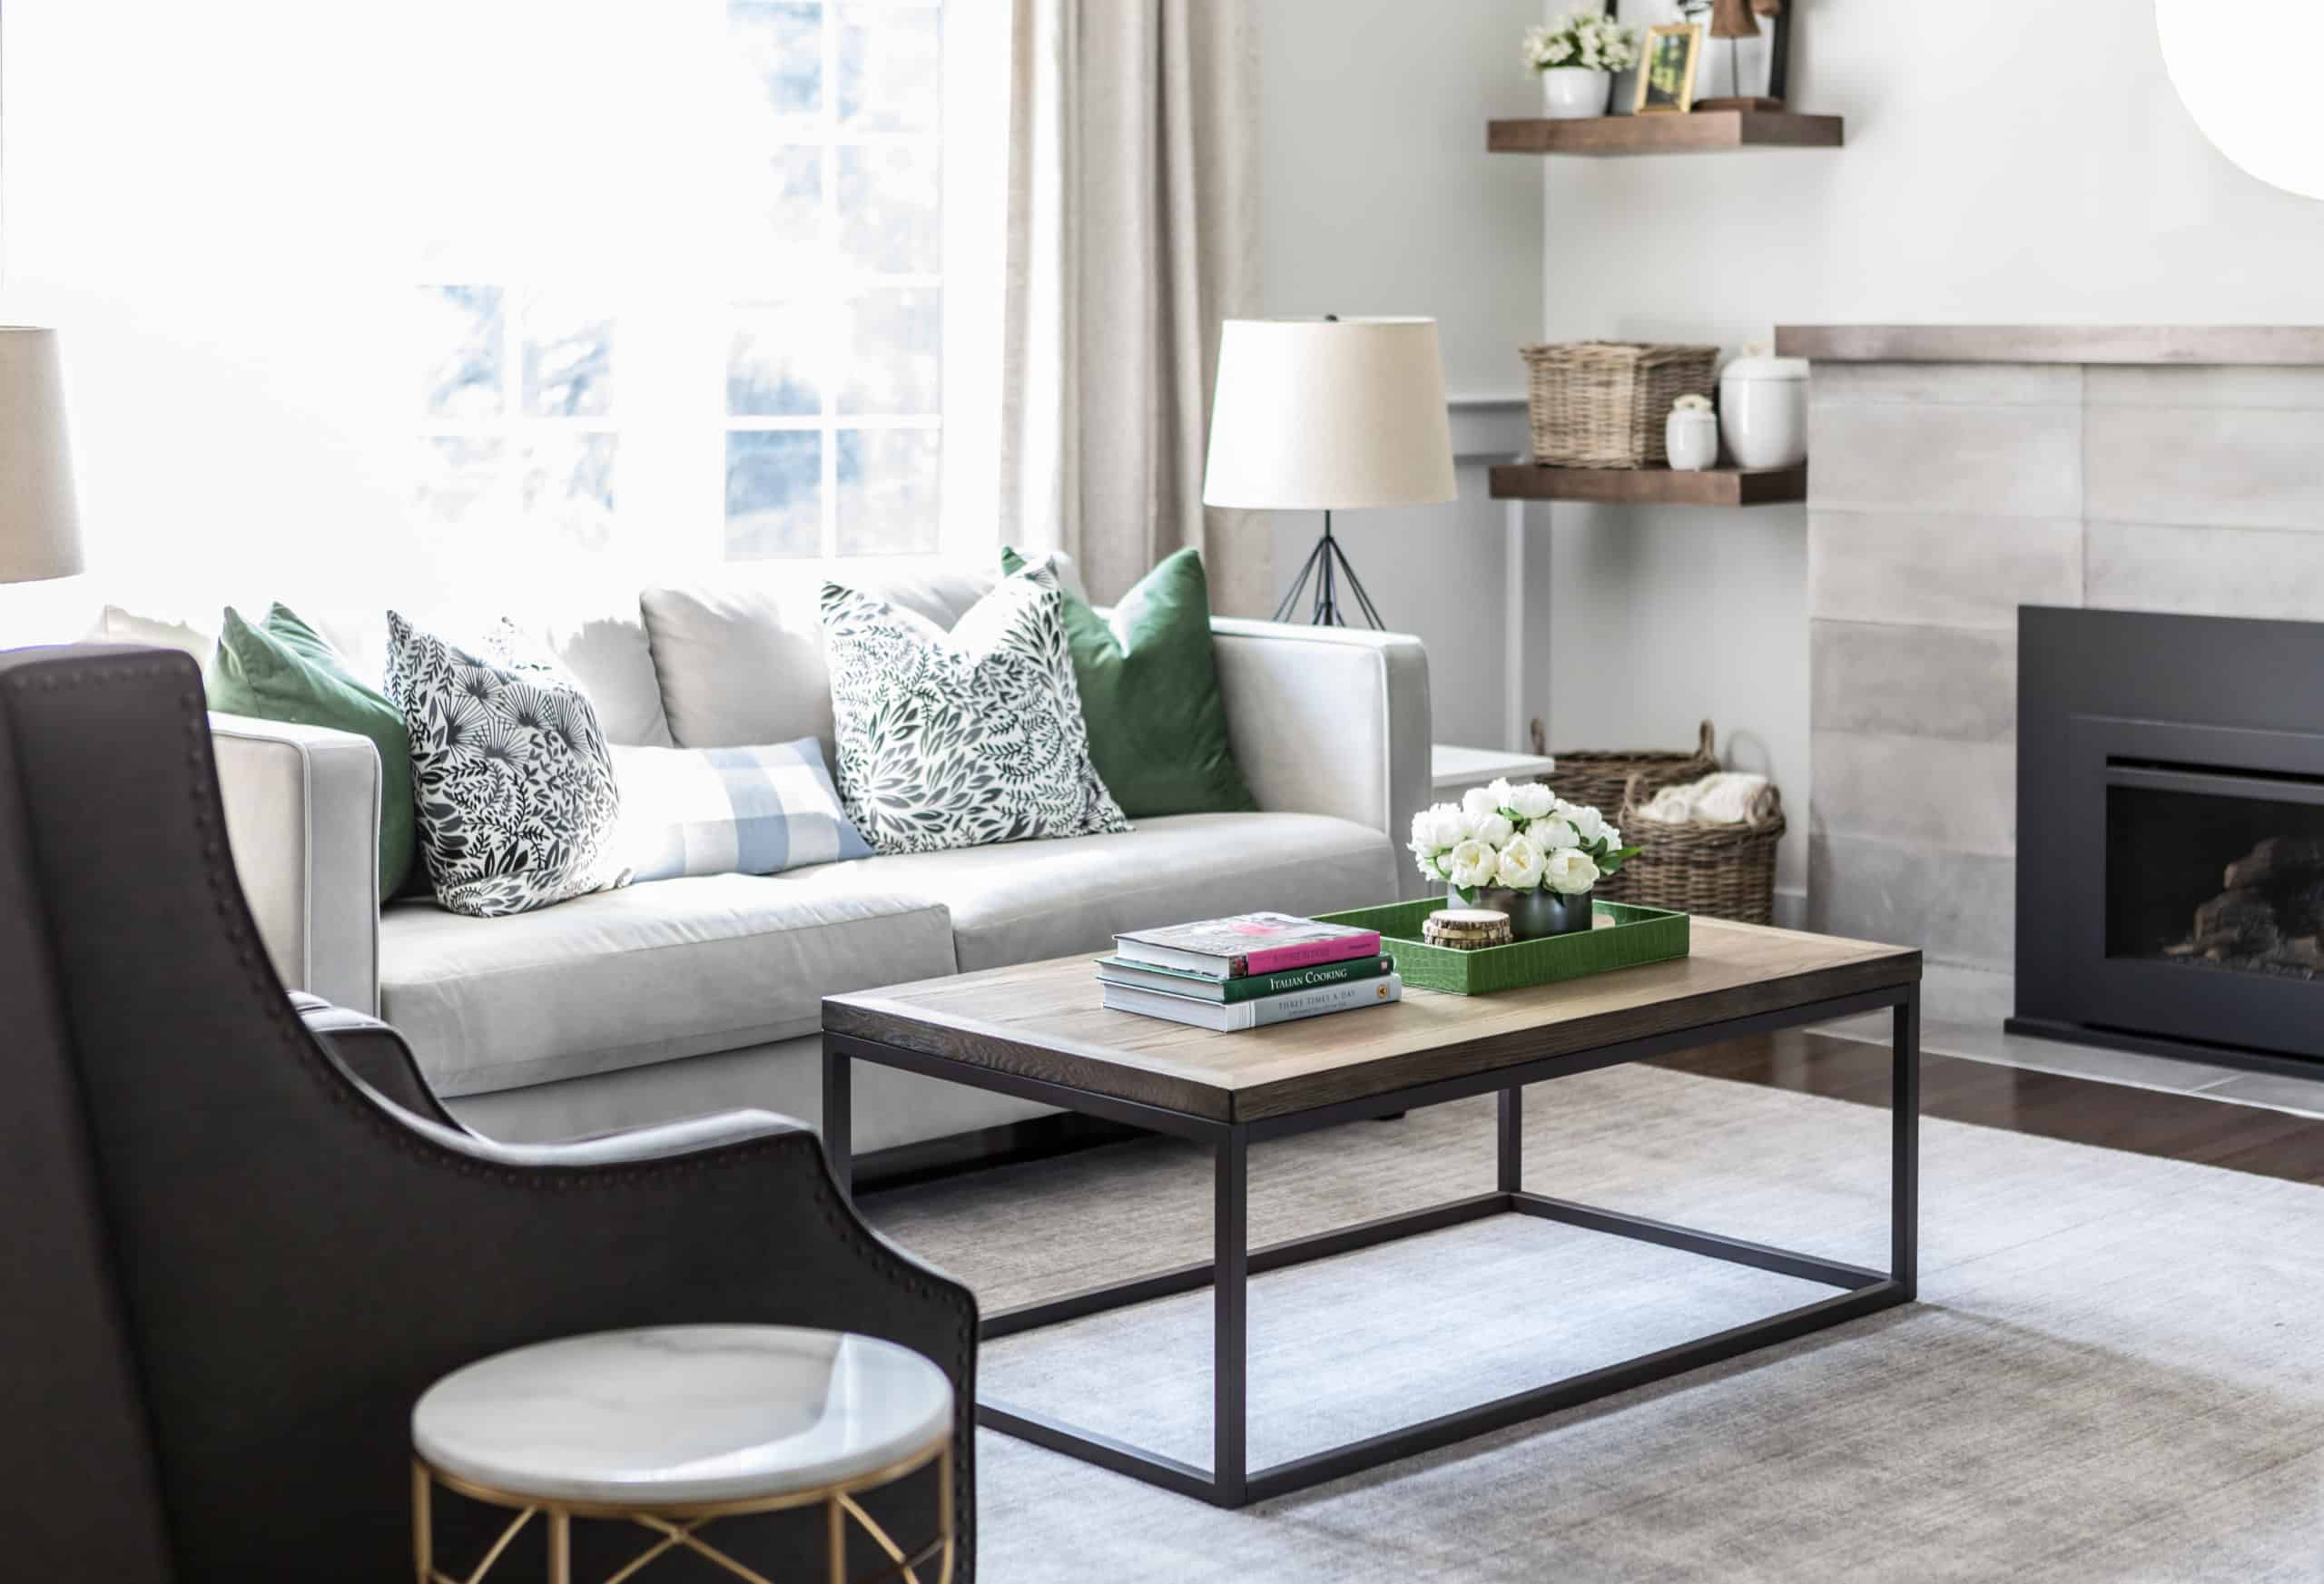 Basic coffee table inside a white and green themed living room